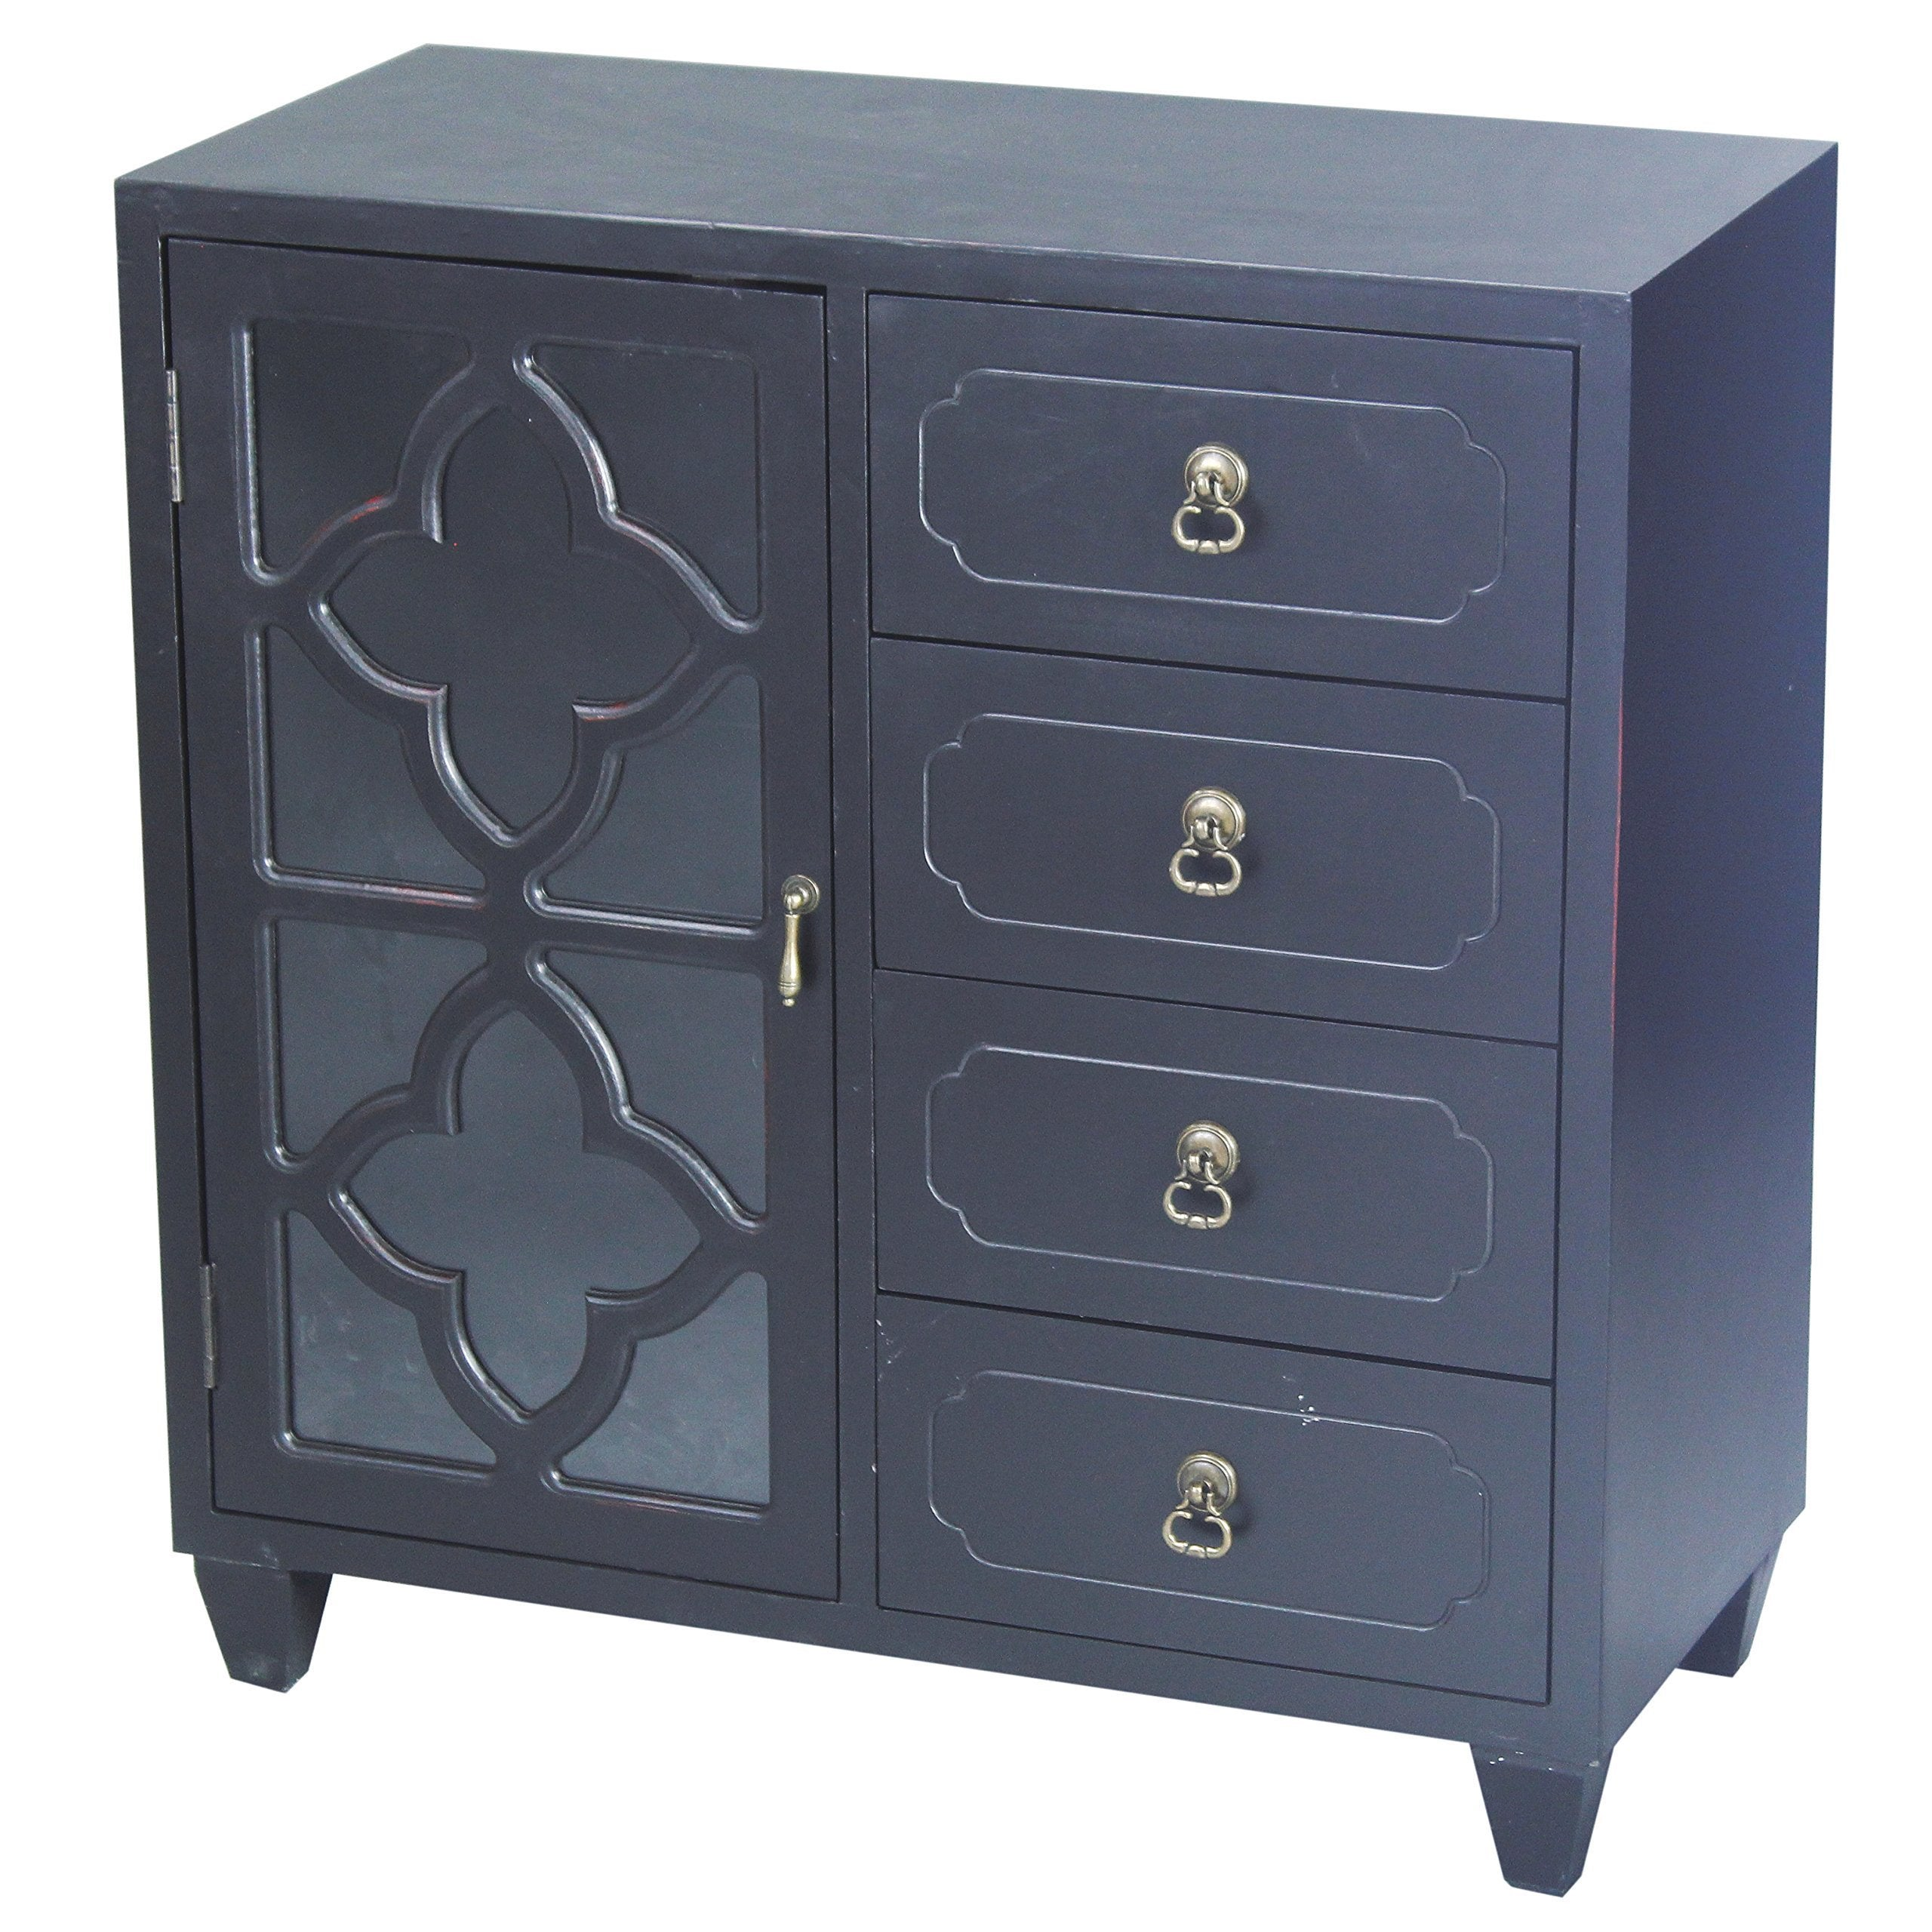 Discover the heather ann creations 4 drawer wooden accent chest and cabinet clover pattern grille with glass backing 30 75h x 29 5w black